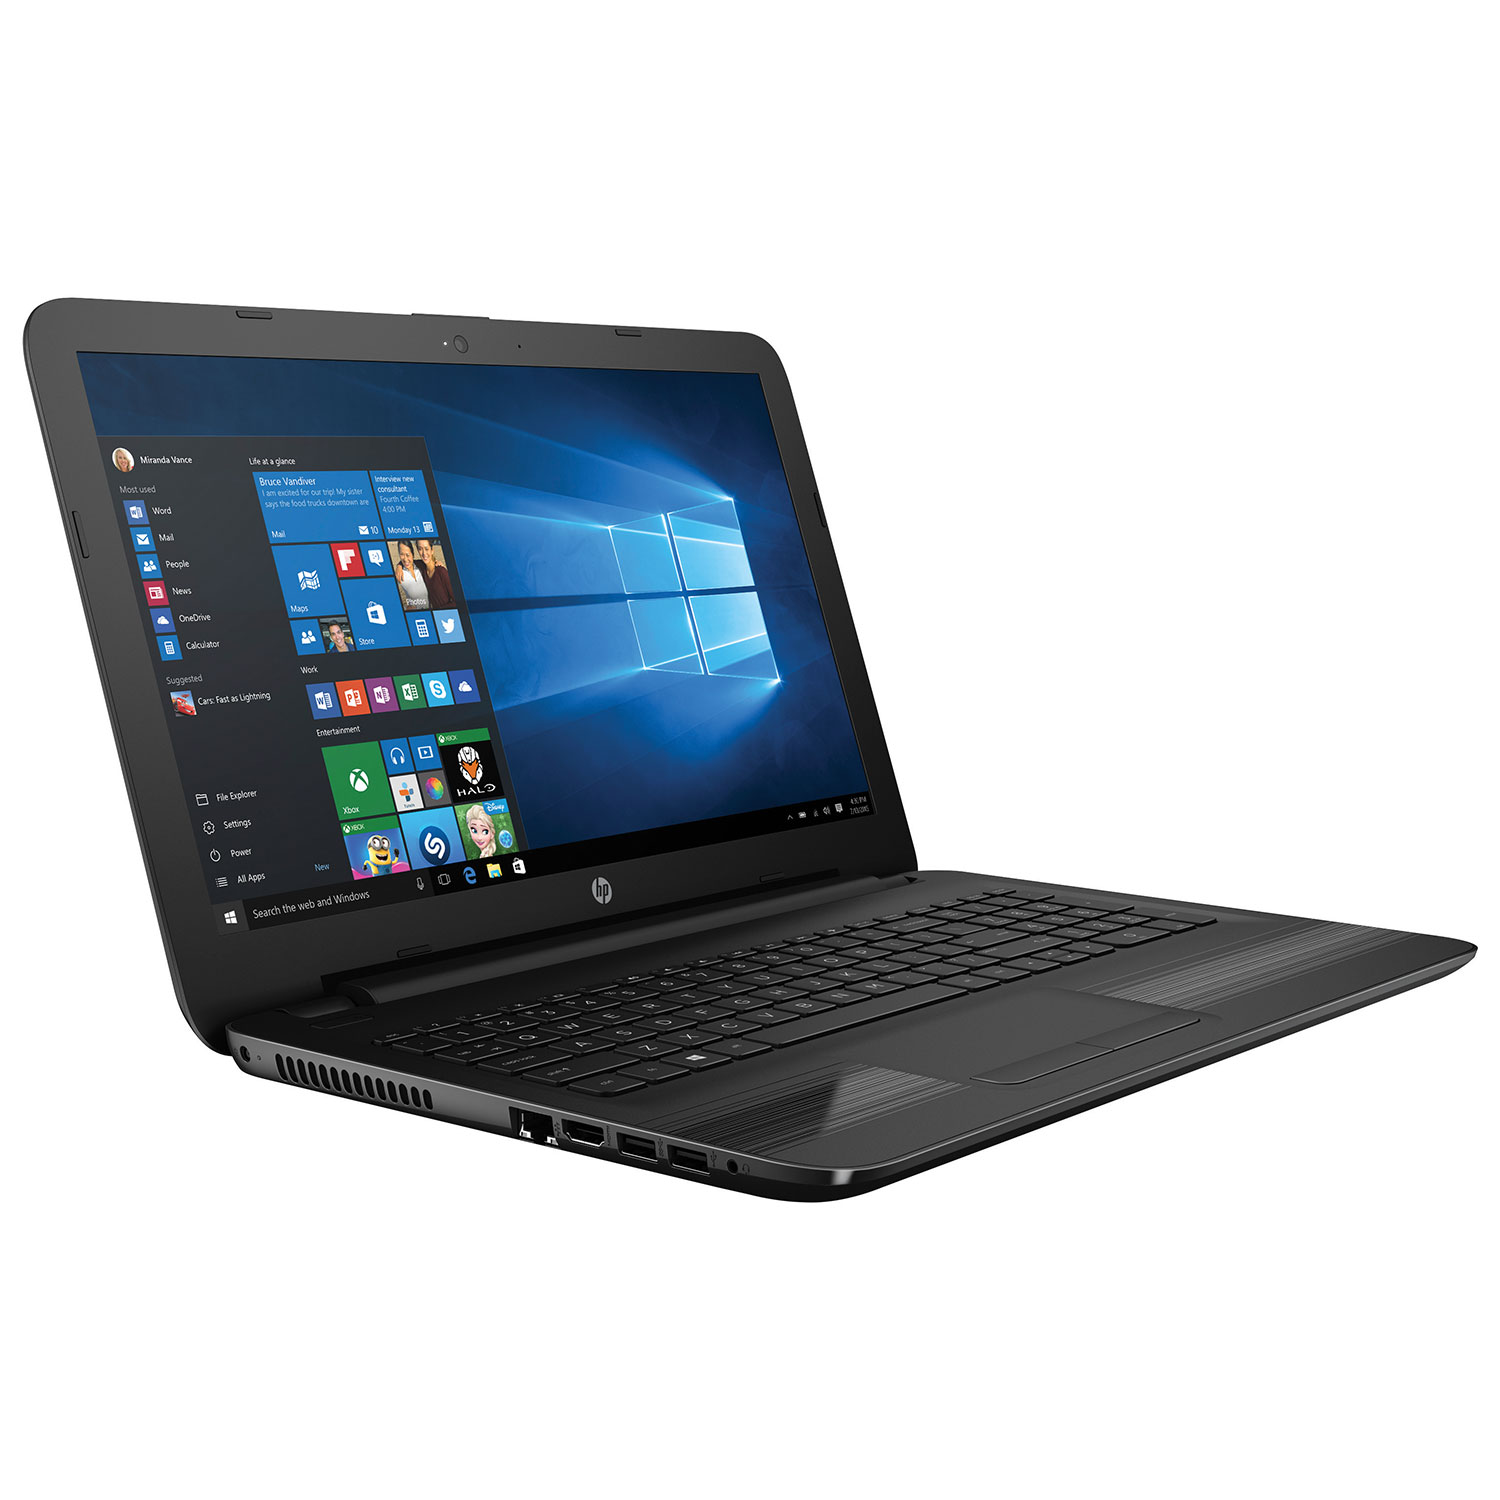 Notebook samsung core i3 4gb 500hd